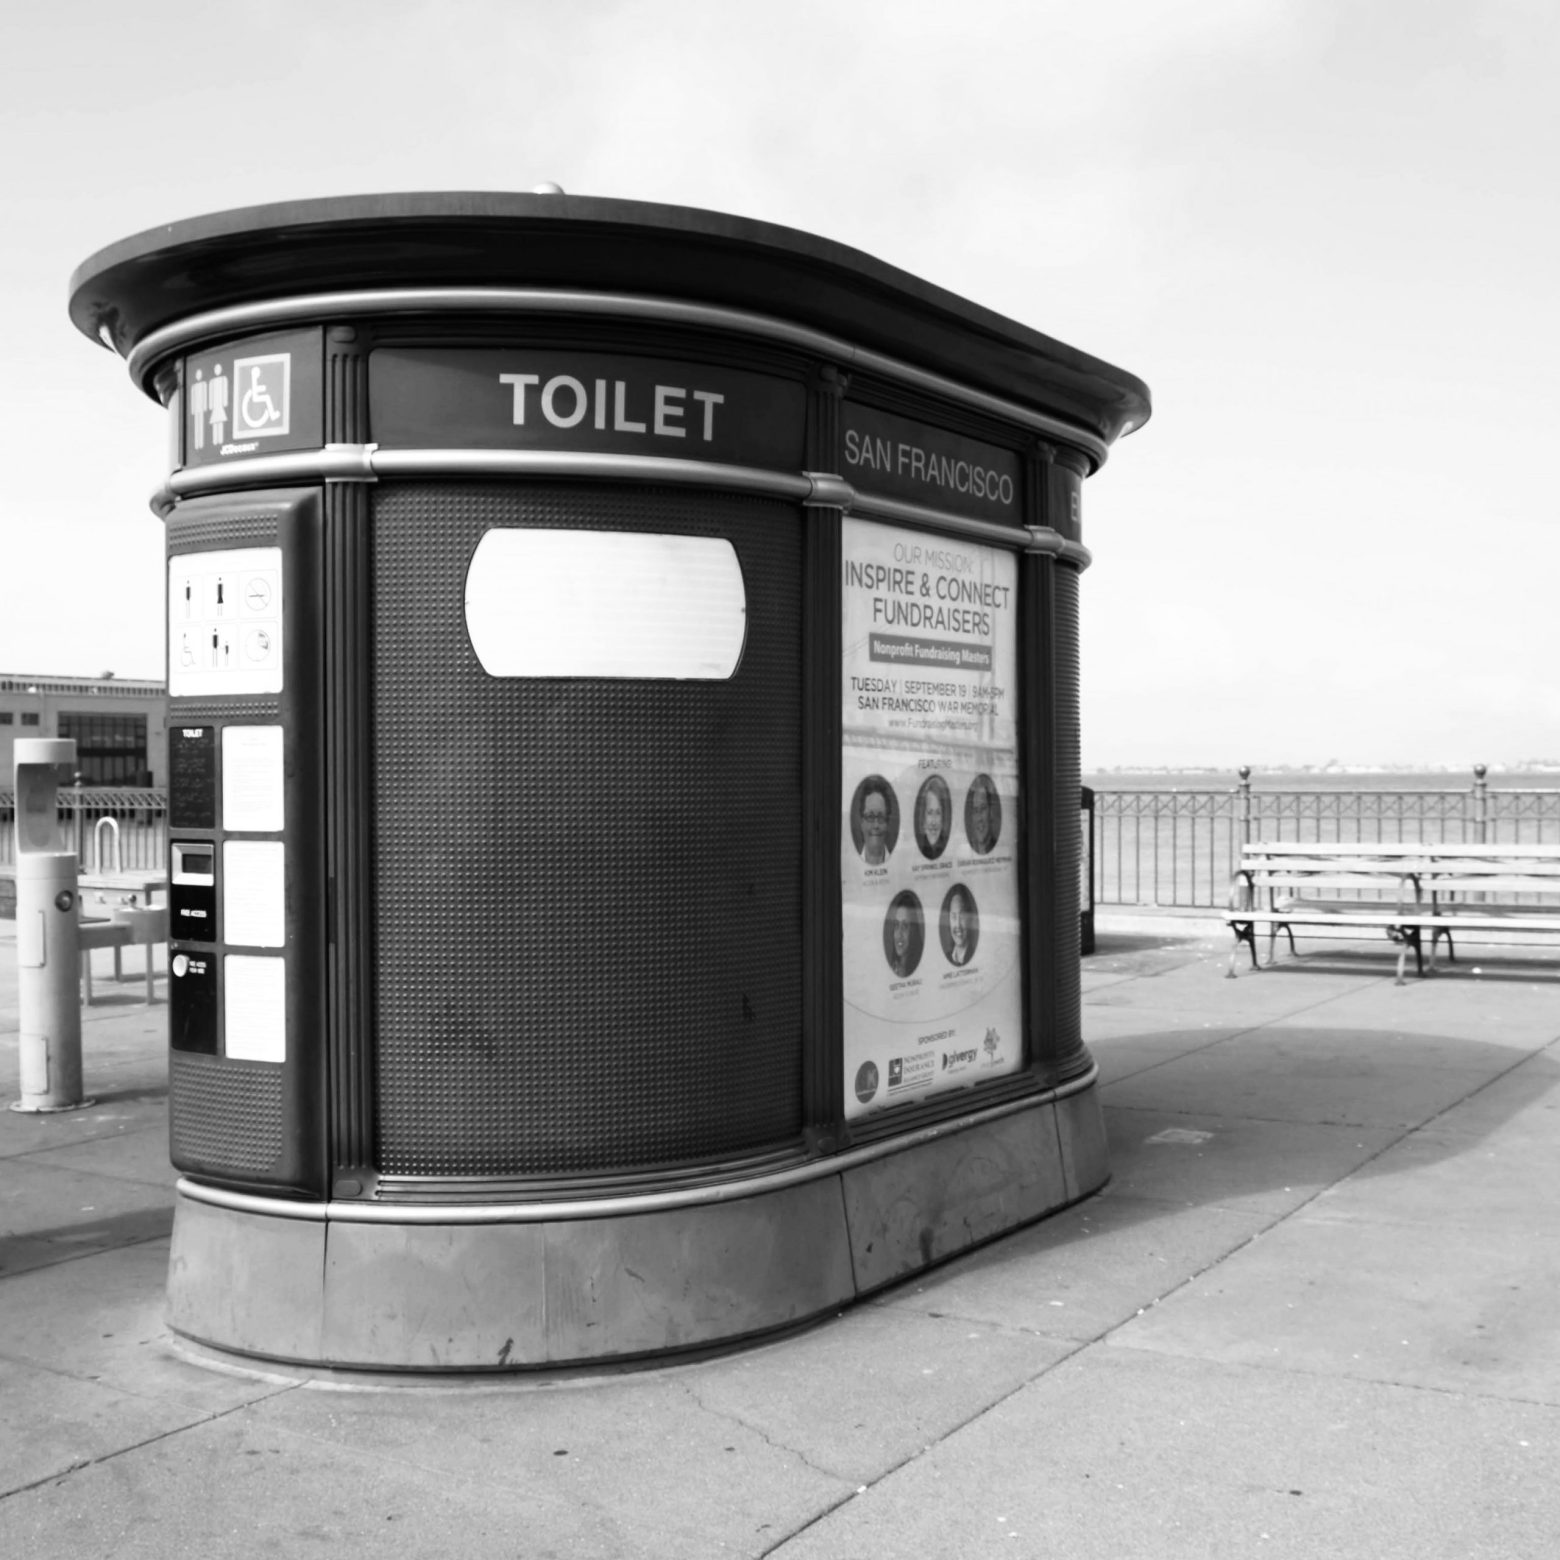 San Francisco's toilet and kiosk contract with JCDecaux under investigation